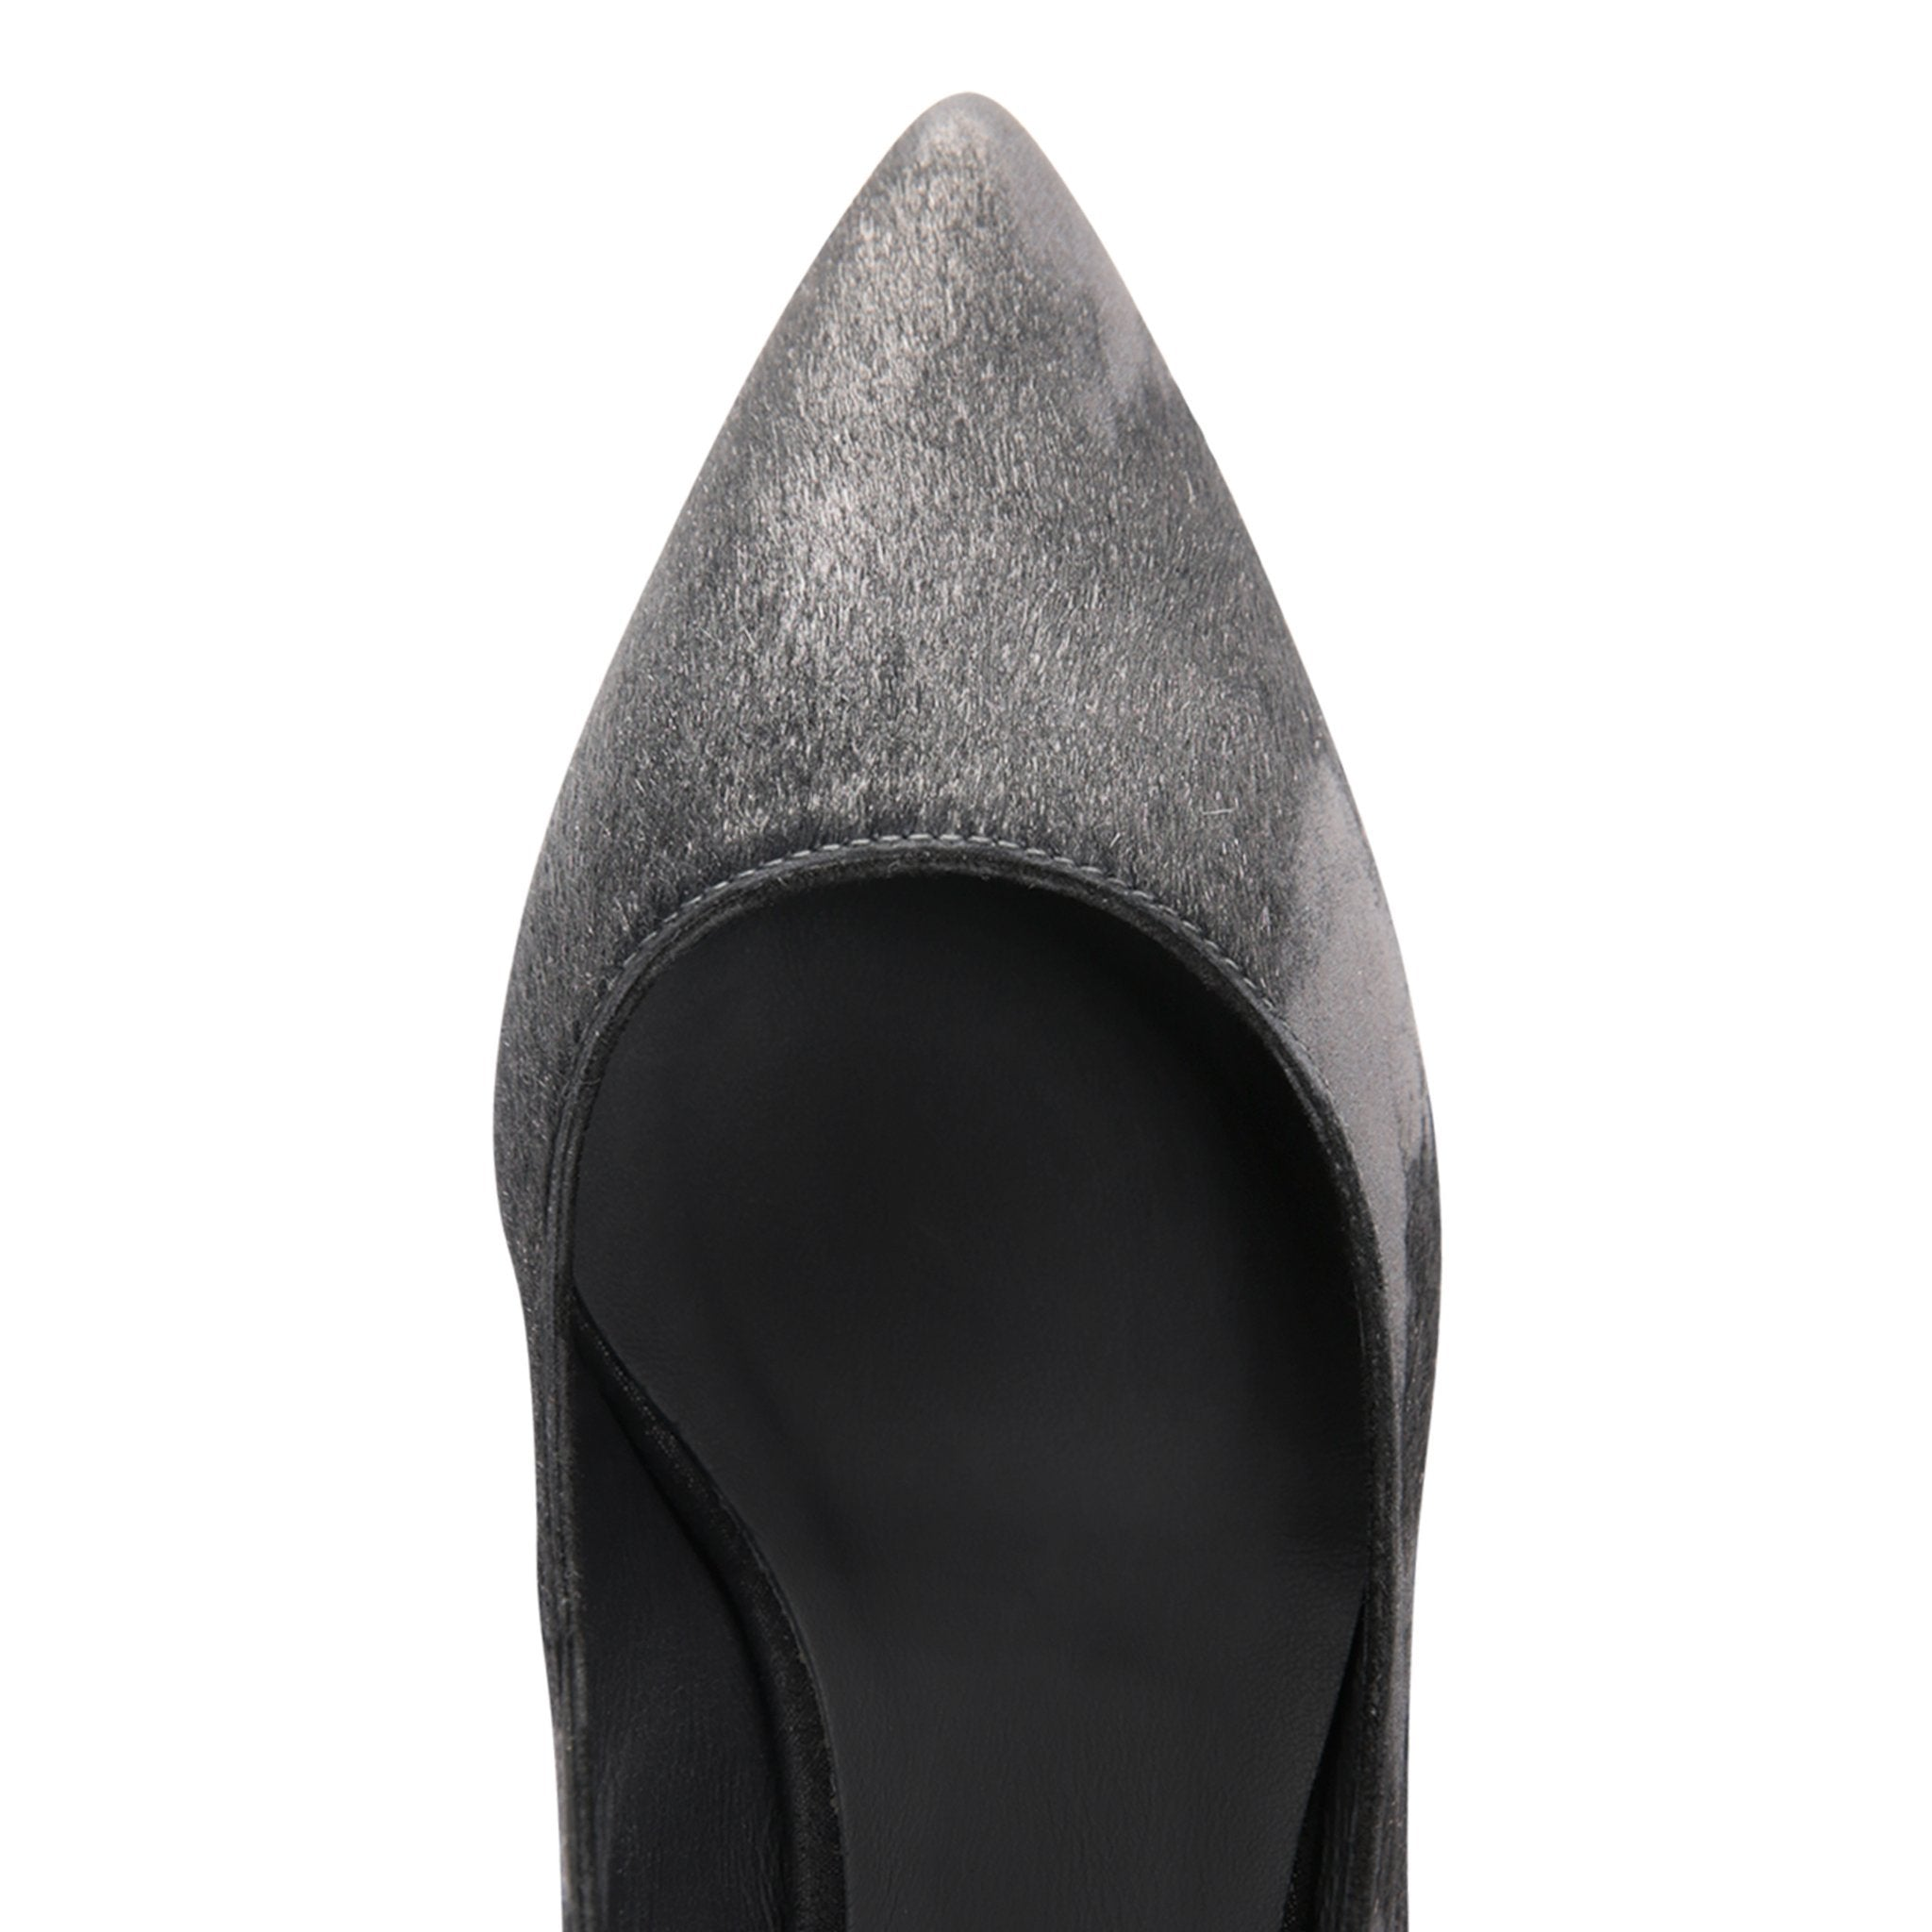 TRENTO - Calf Hair Vintage + Burma Nero, VIAJIYU - Women's Hand Made Sustainable Luxury Shoes. Made in Italy. Made to Order.